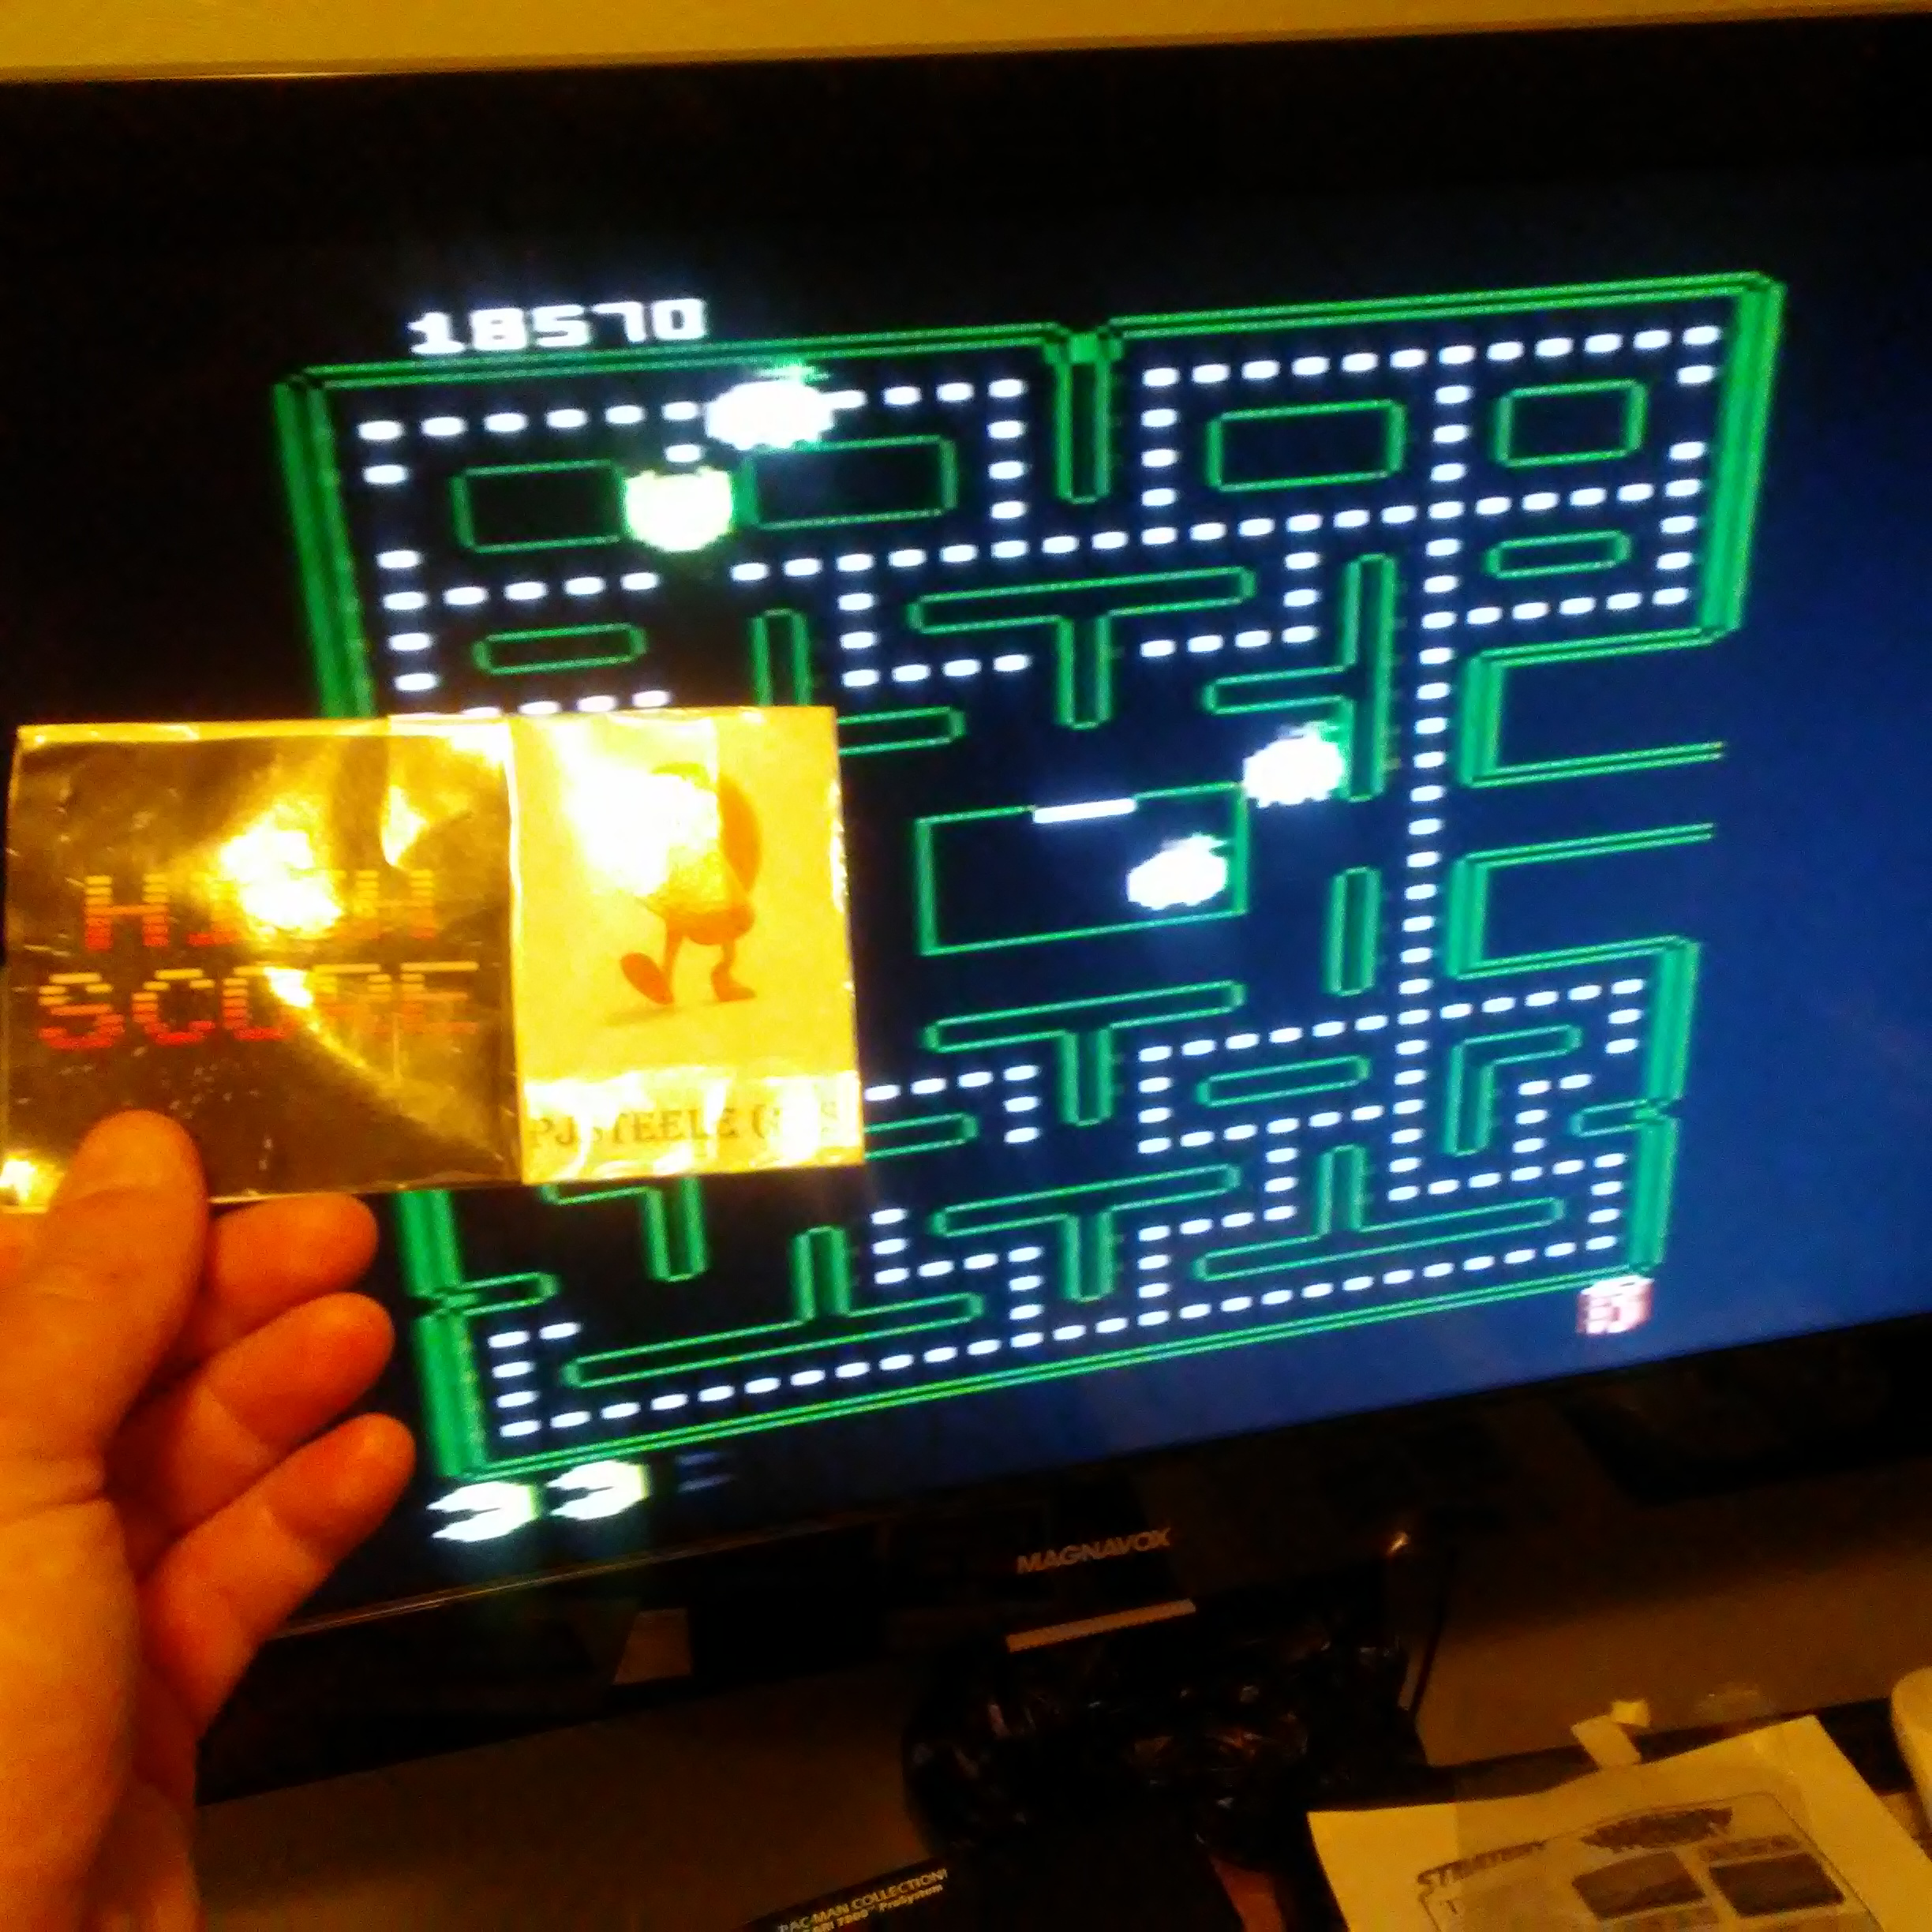 Pjsteele: Pac-Man Collection: Pac-Man [Cola/Plus On/Fast Off] (Atari 7800) 18,570 points on 2018-07-05 19:46:48